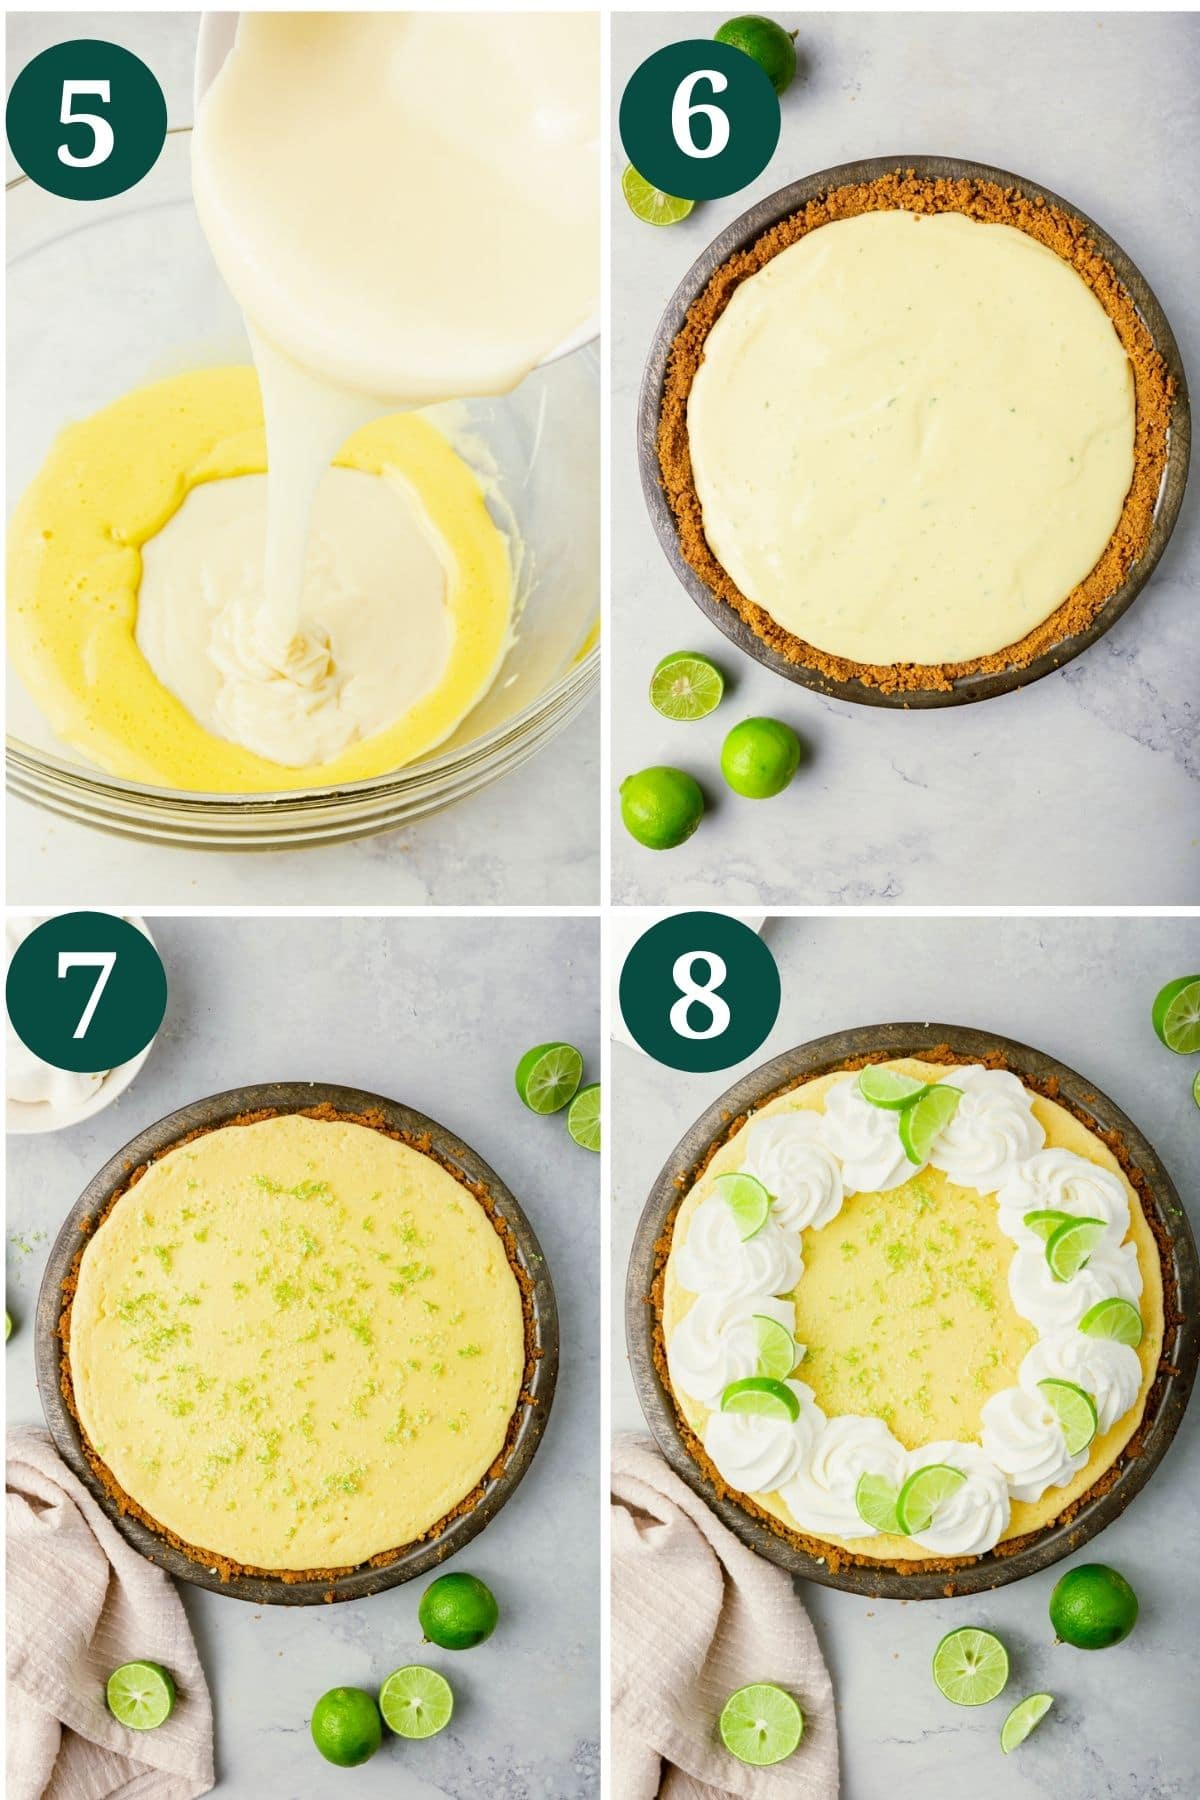 A collage showing how to make the filling for gluten-free key lime pie and top with whipped cream.